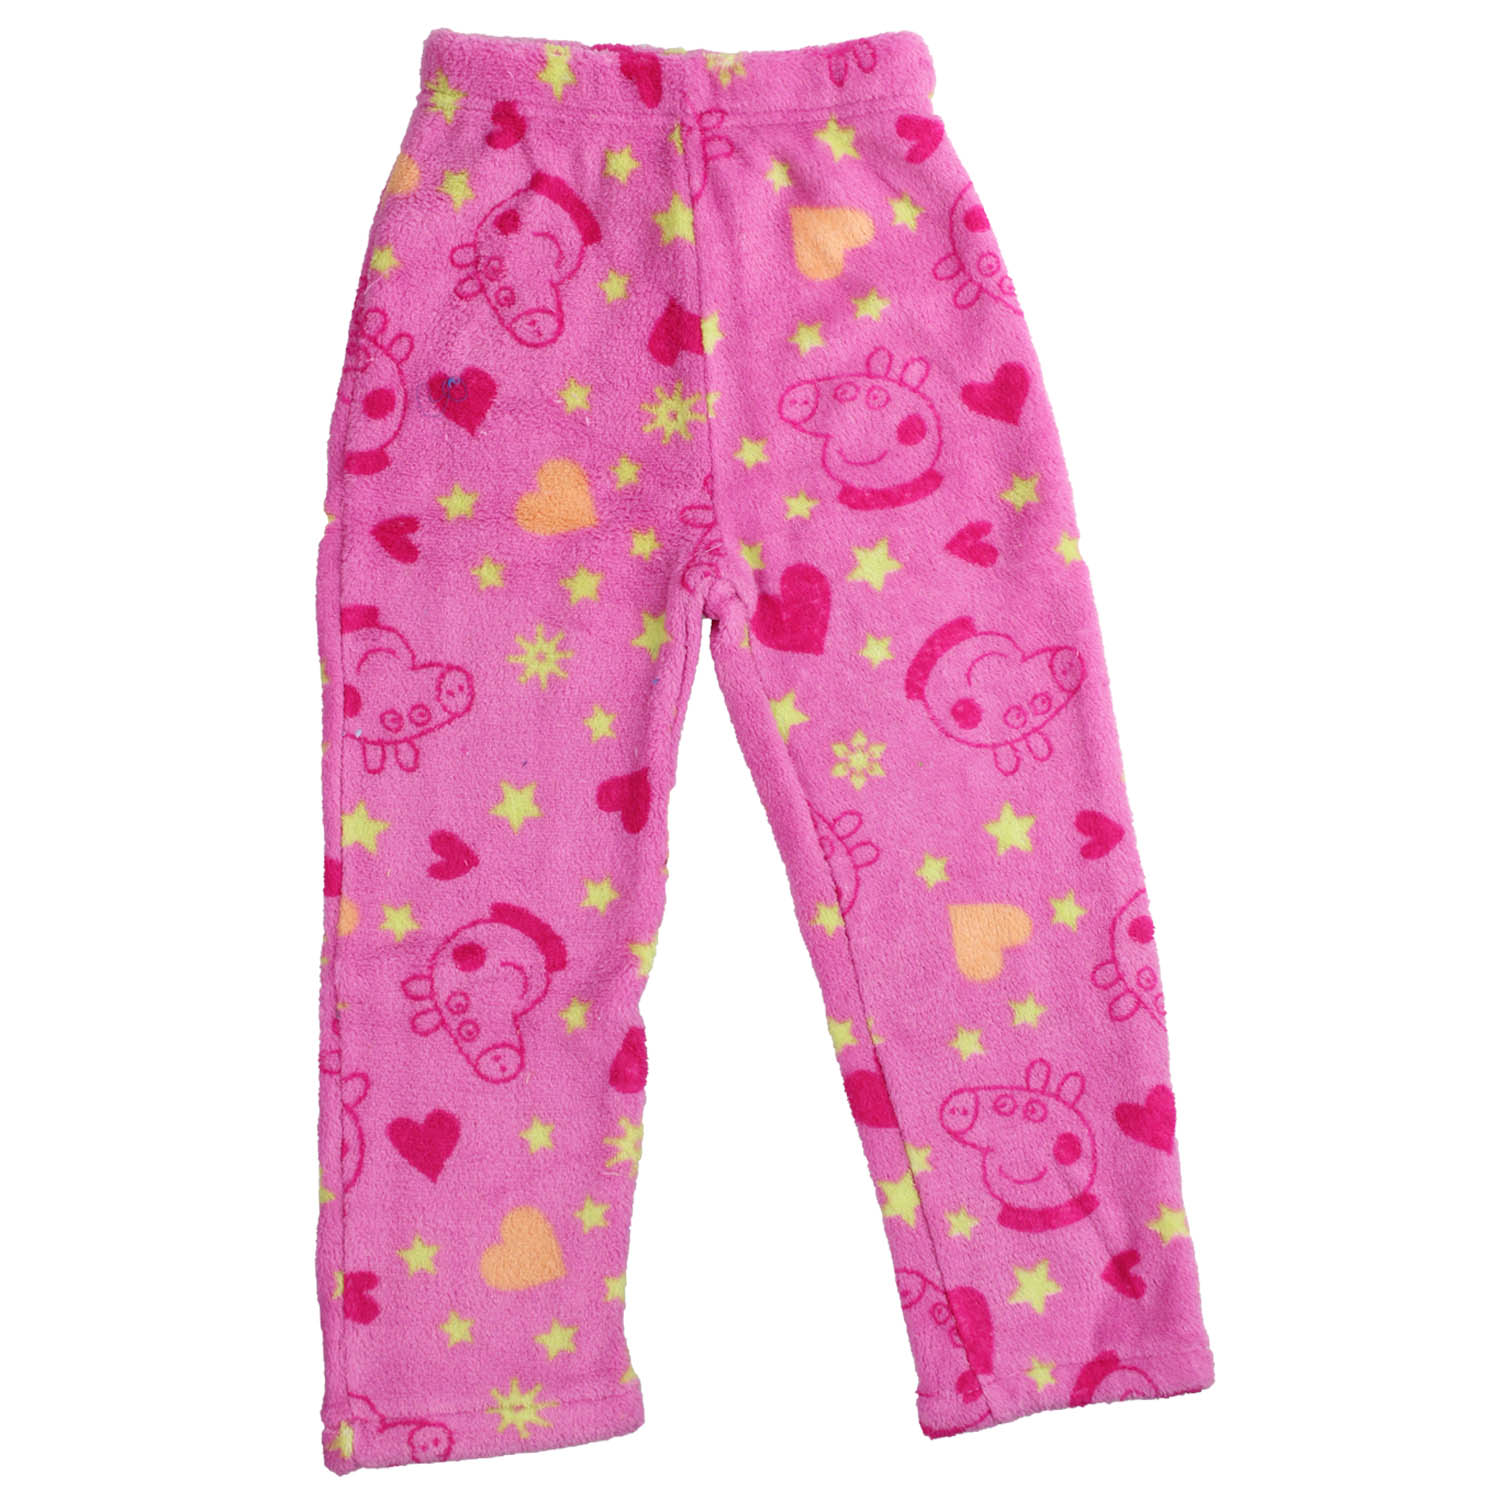 Peppa Pig Fleece Pajama. Long sleeved crew neck T-Shirt top with full  length bottoms. Made from 100% Coral Fleece fabric. Machine washable. 654489279